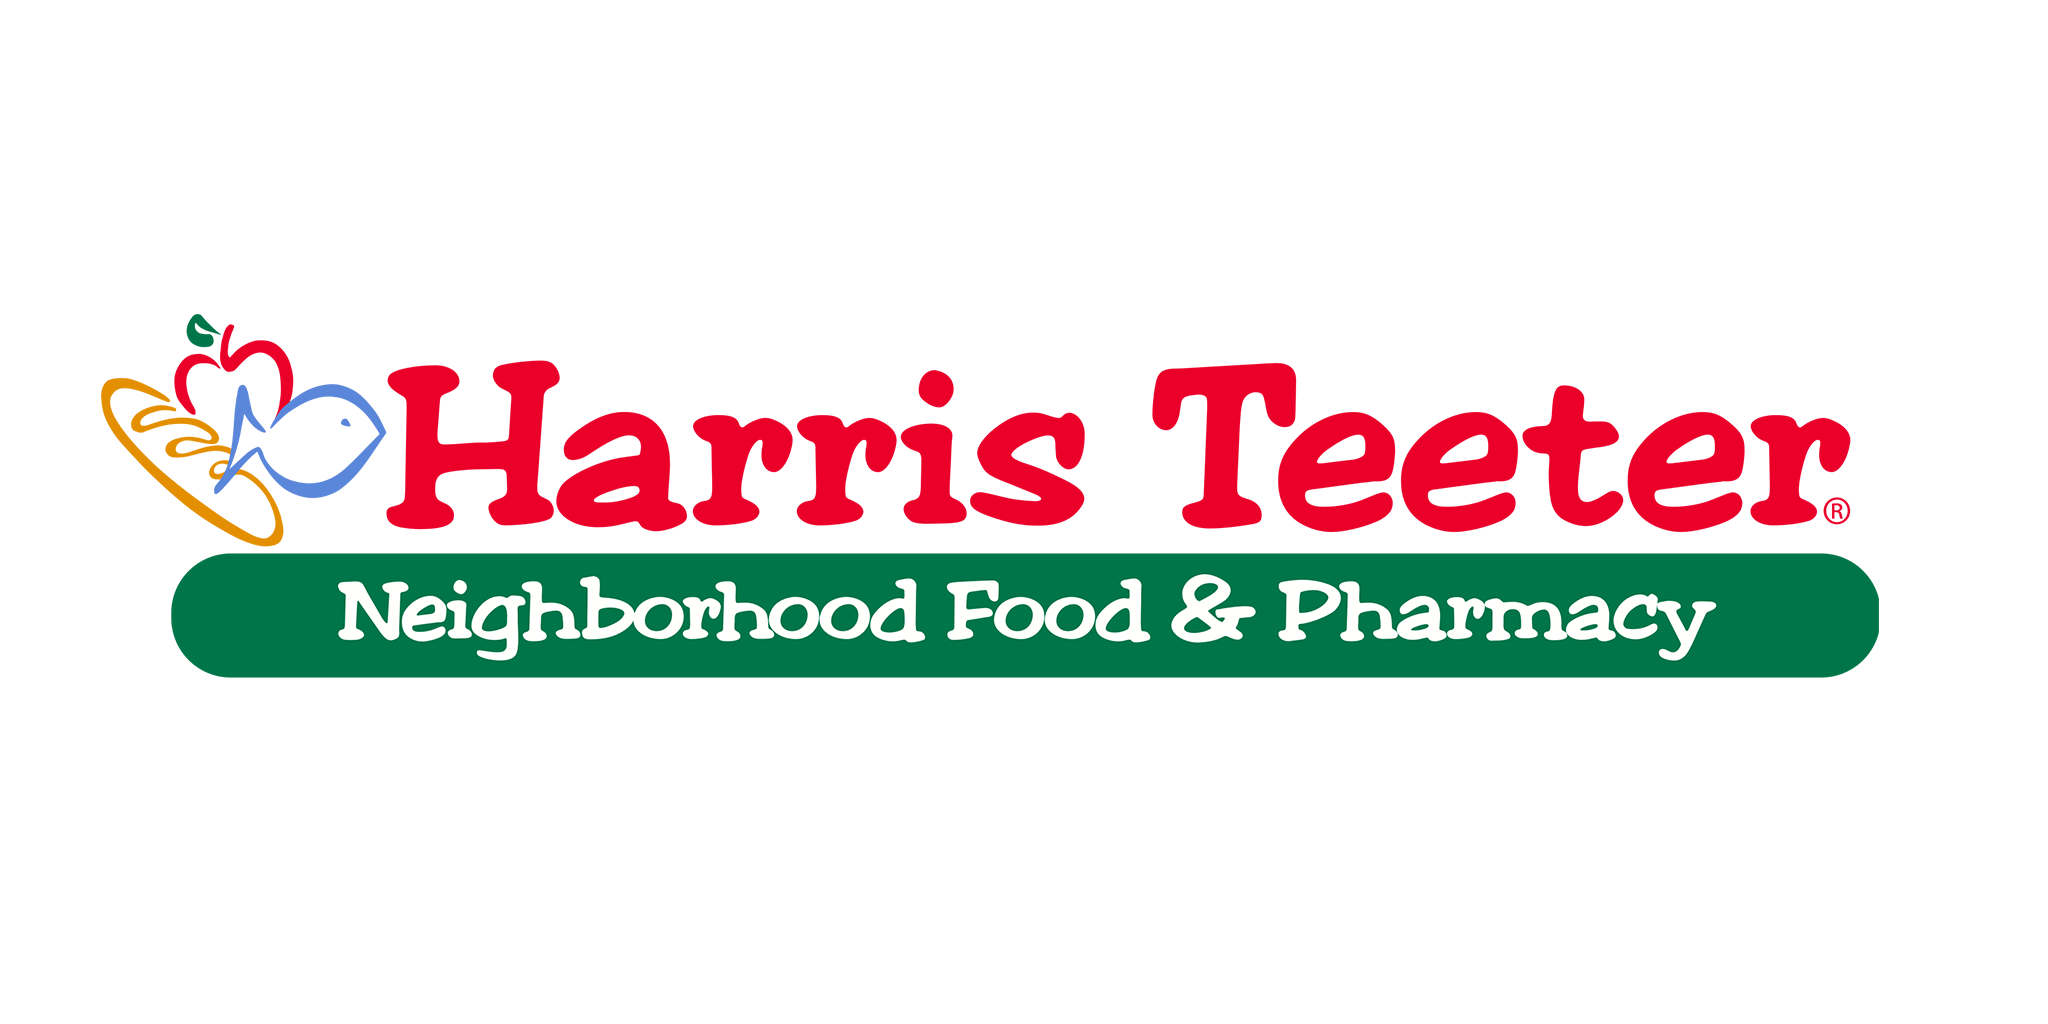 Where to Buy/Ralston-Family-Farms-Grocers-harris-teeter-logo.png